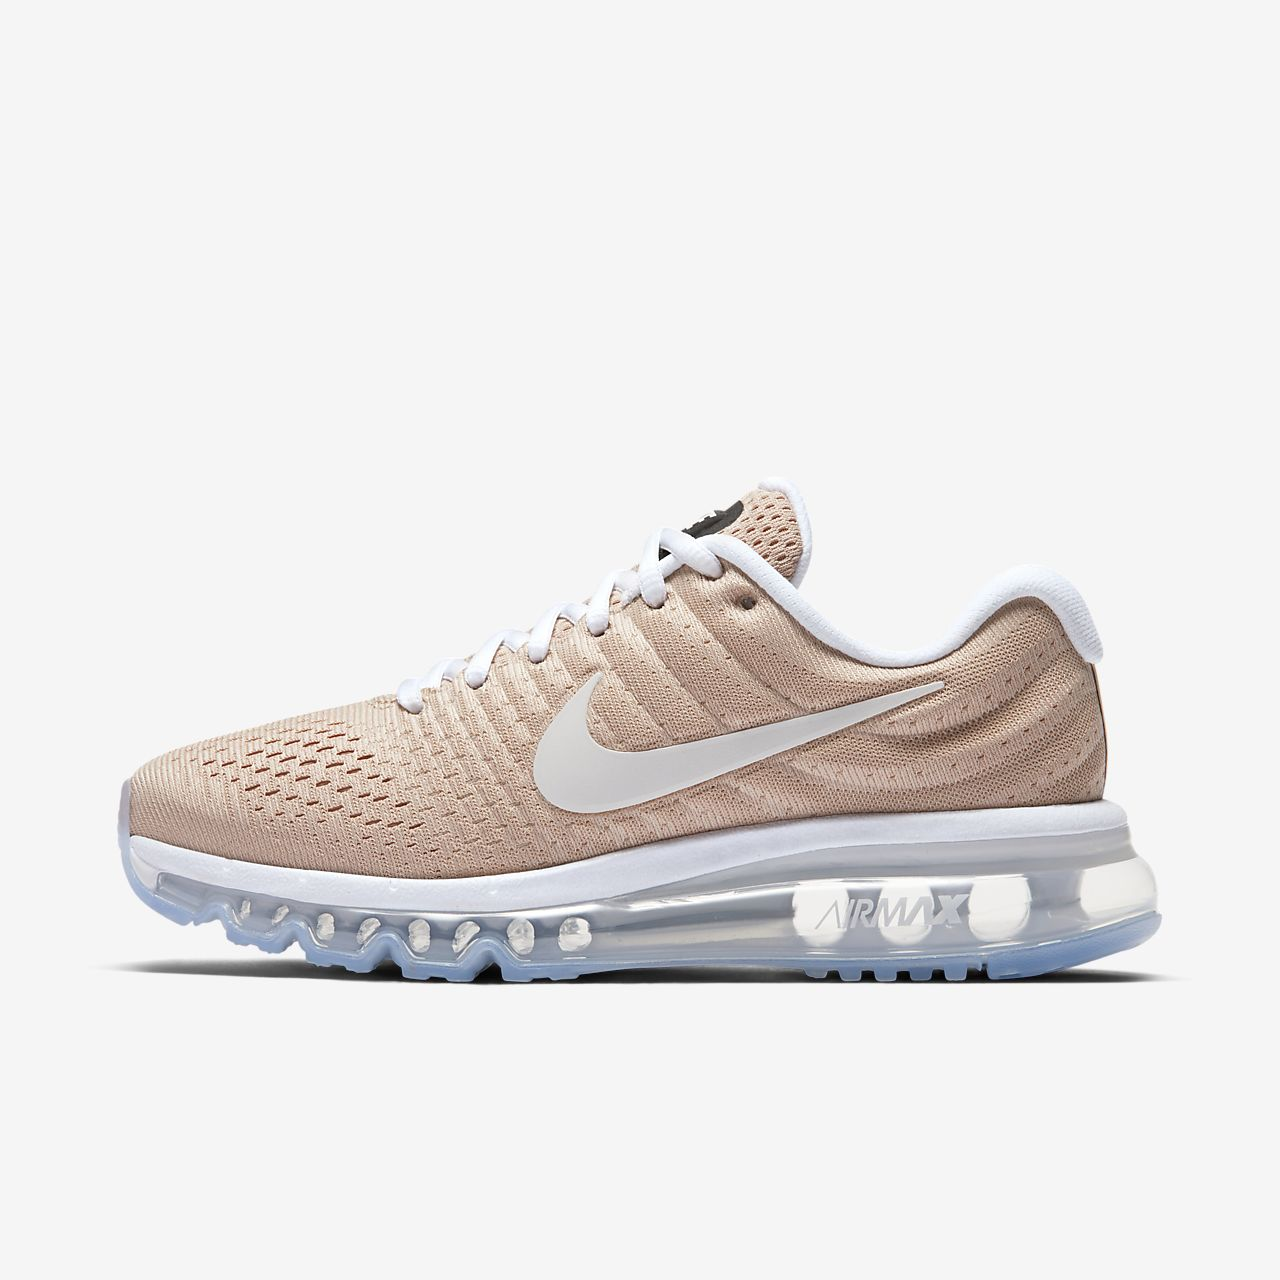 nike air max 2017 femme rose et blanche